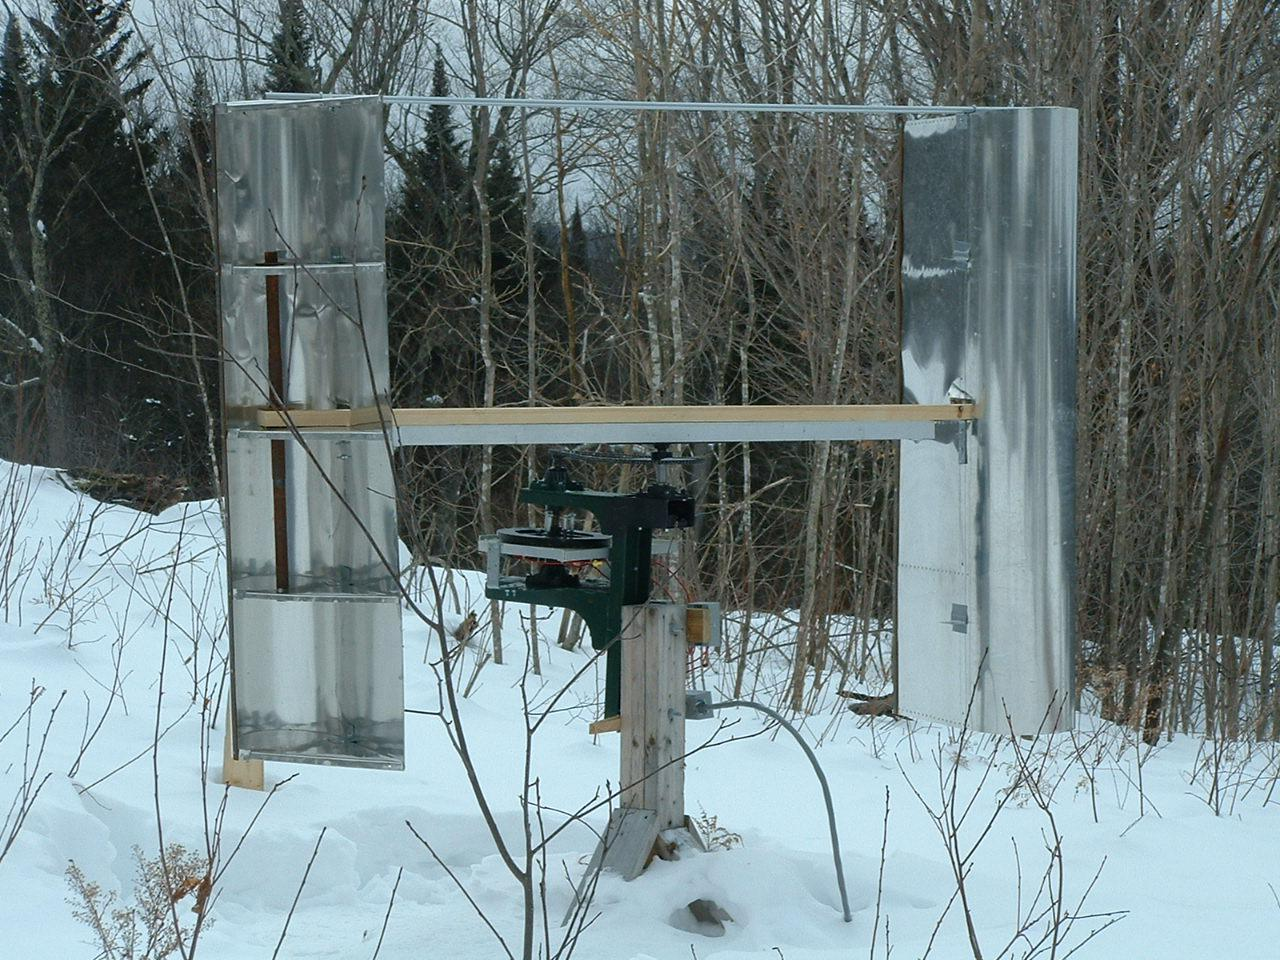 today i found out how to build a vertical axis wind turbine vawt and it works by the same principle those huge high powered wind turbines do  [ 1280 x 960 Pixel ]